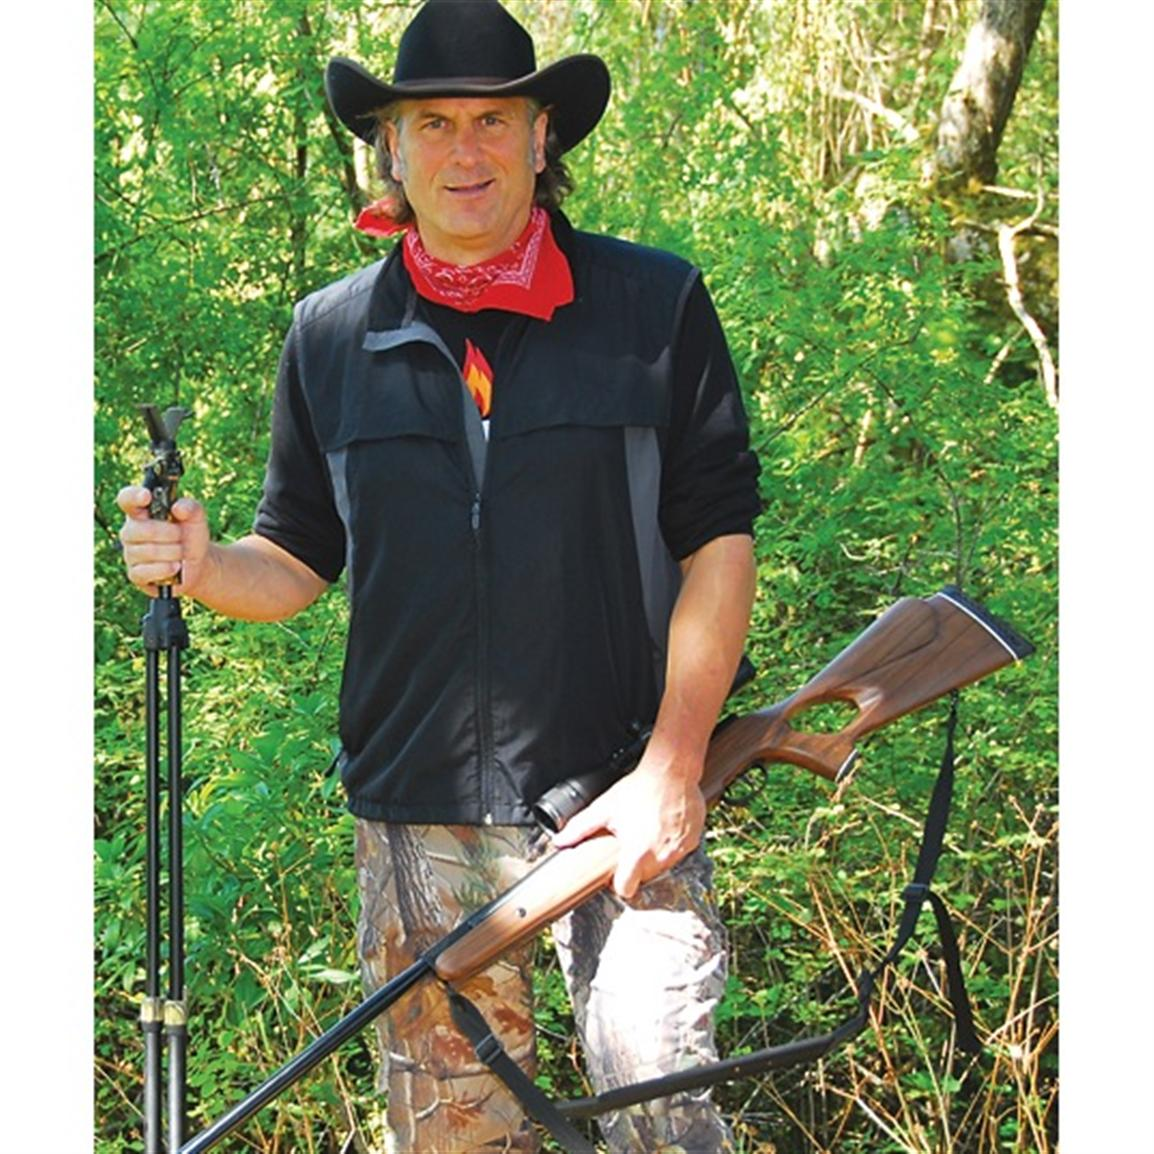 """Finally, a real hunting airgun with quiet knock-down power."" -- Jim Shockey, World-famous Professional Hunter"